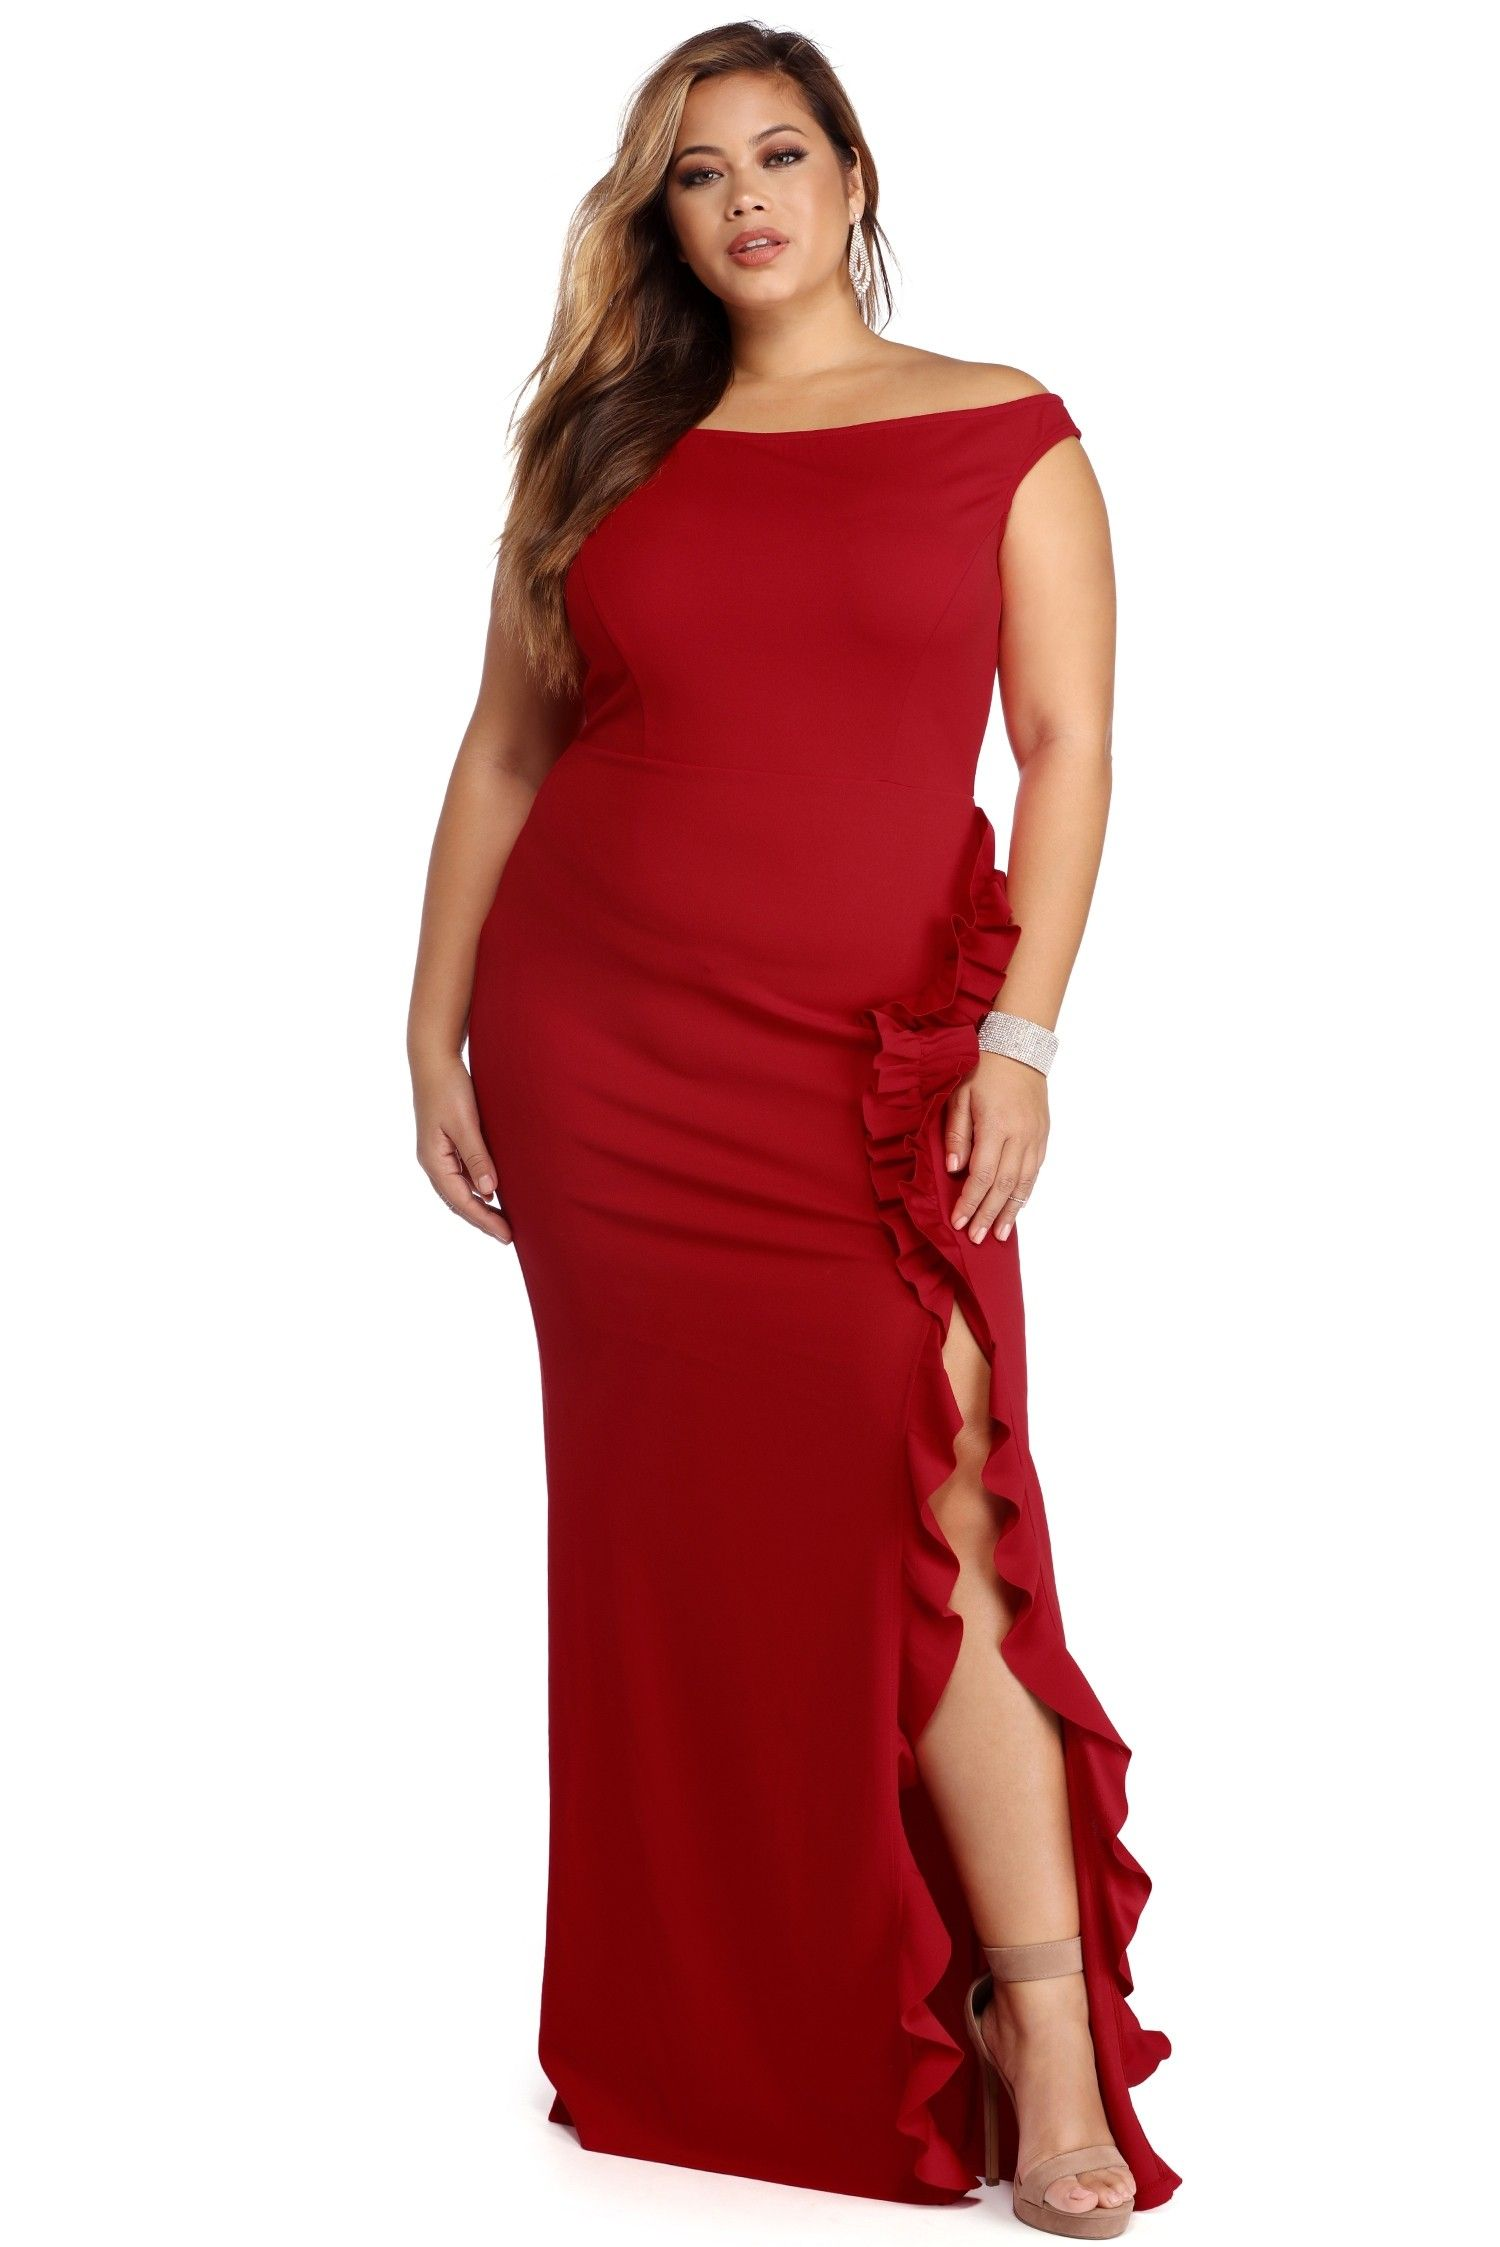 Clearance plus natalie red ruffled dress plus size